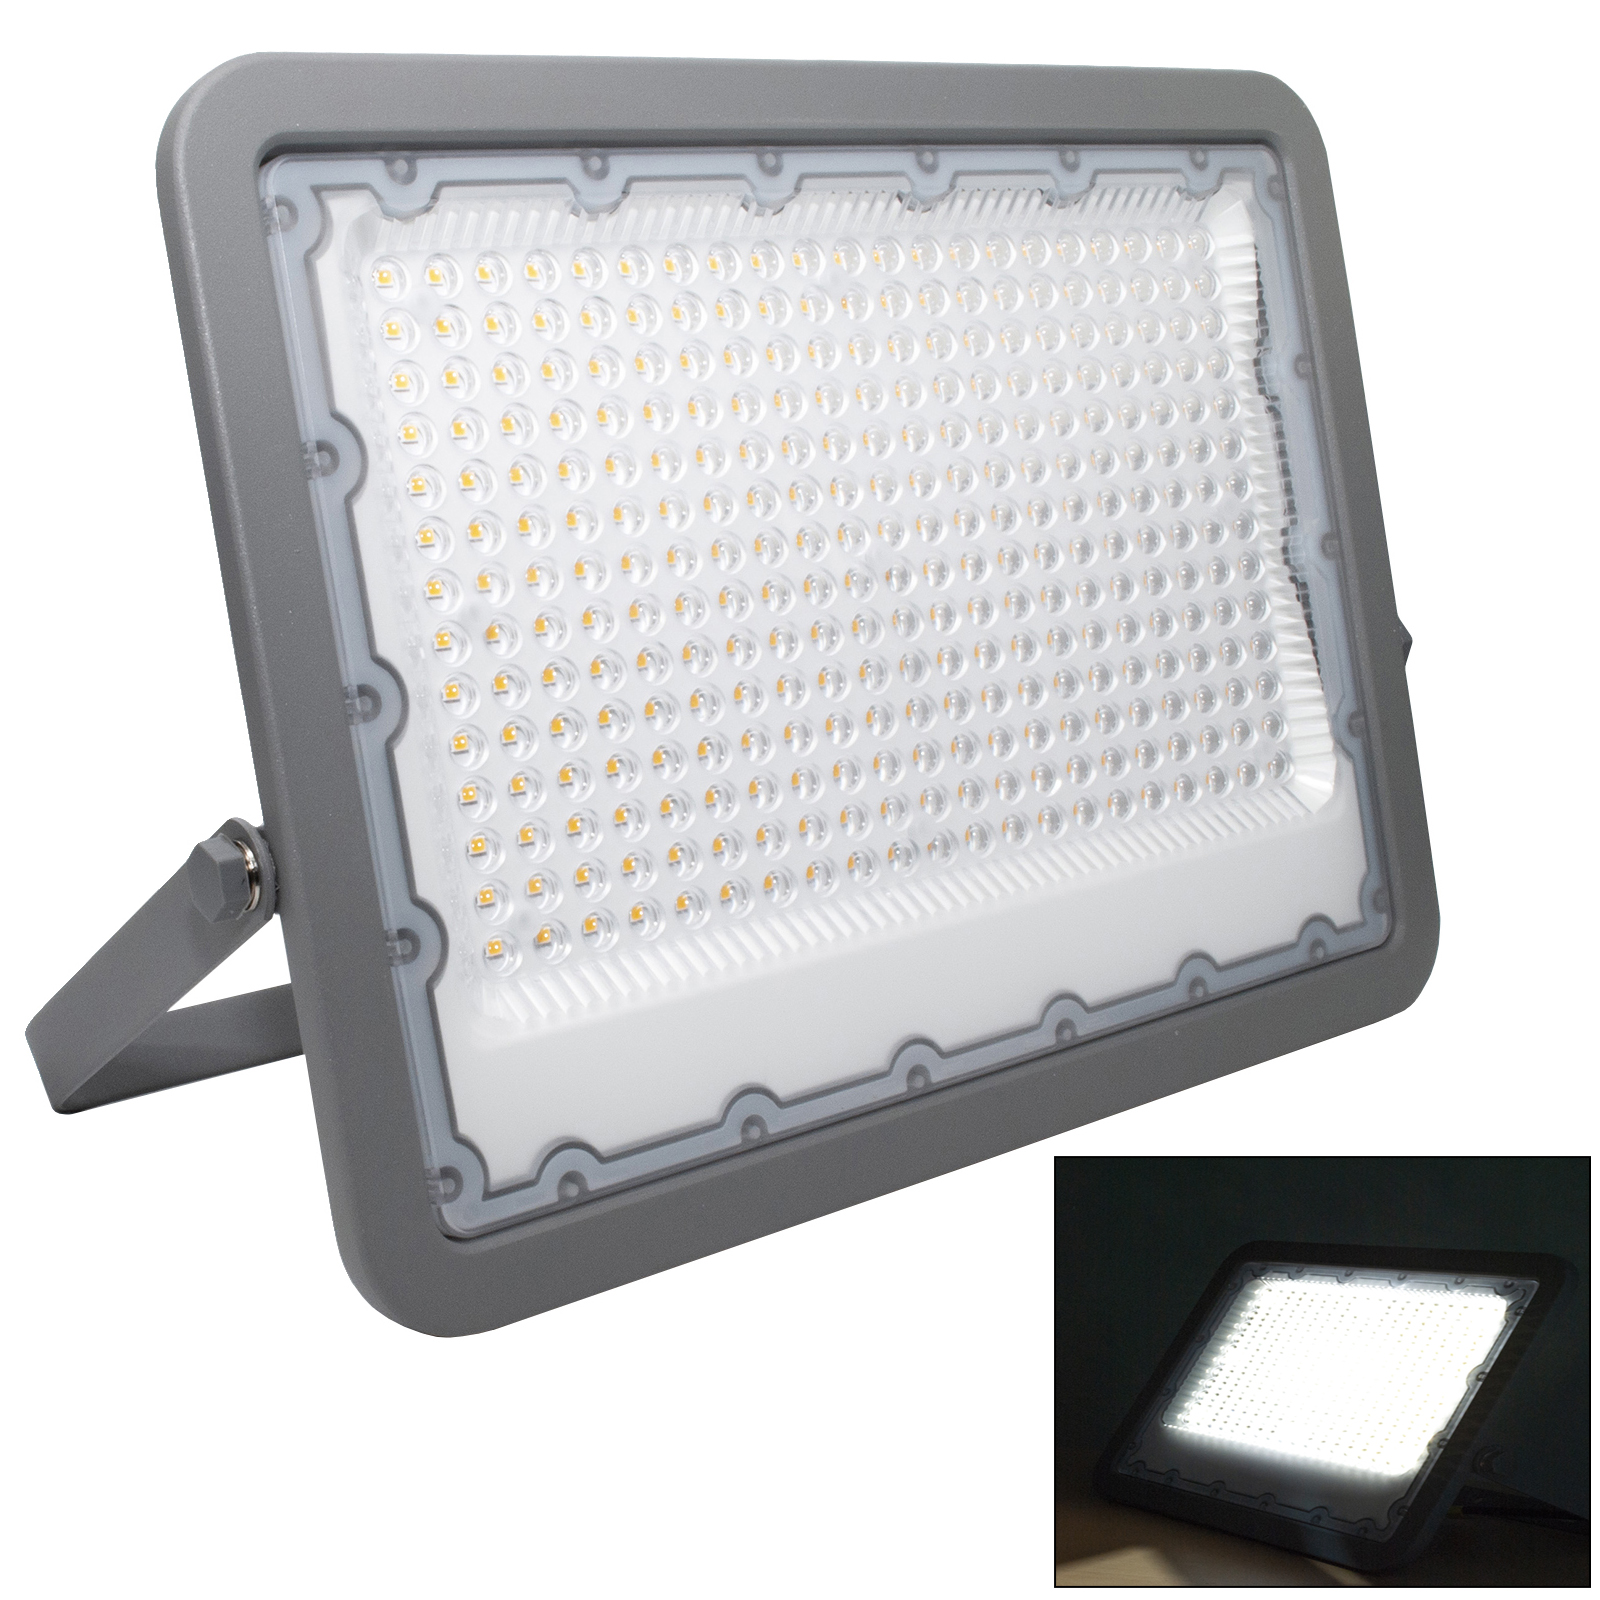 LED lighthouse 200W high efficiency slim LUMILEDS outdoor garden light projector IP65 230V